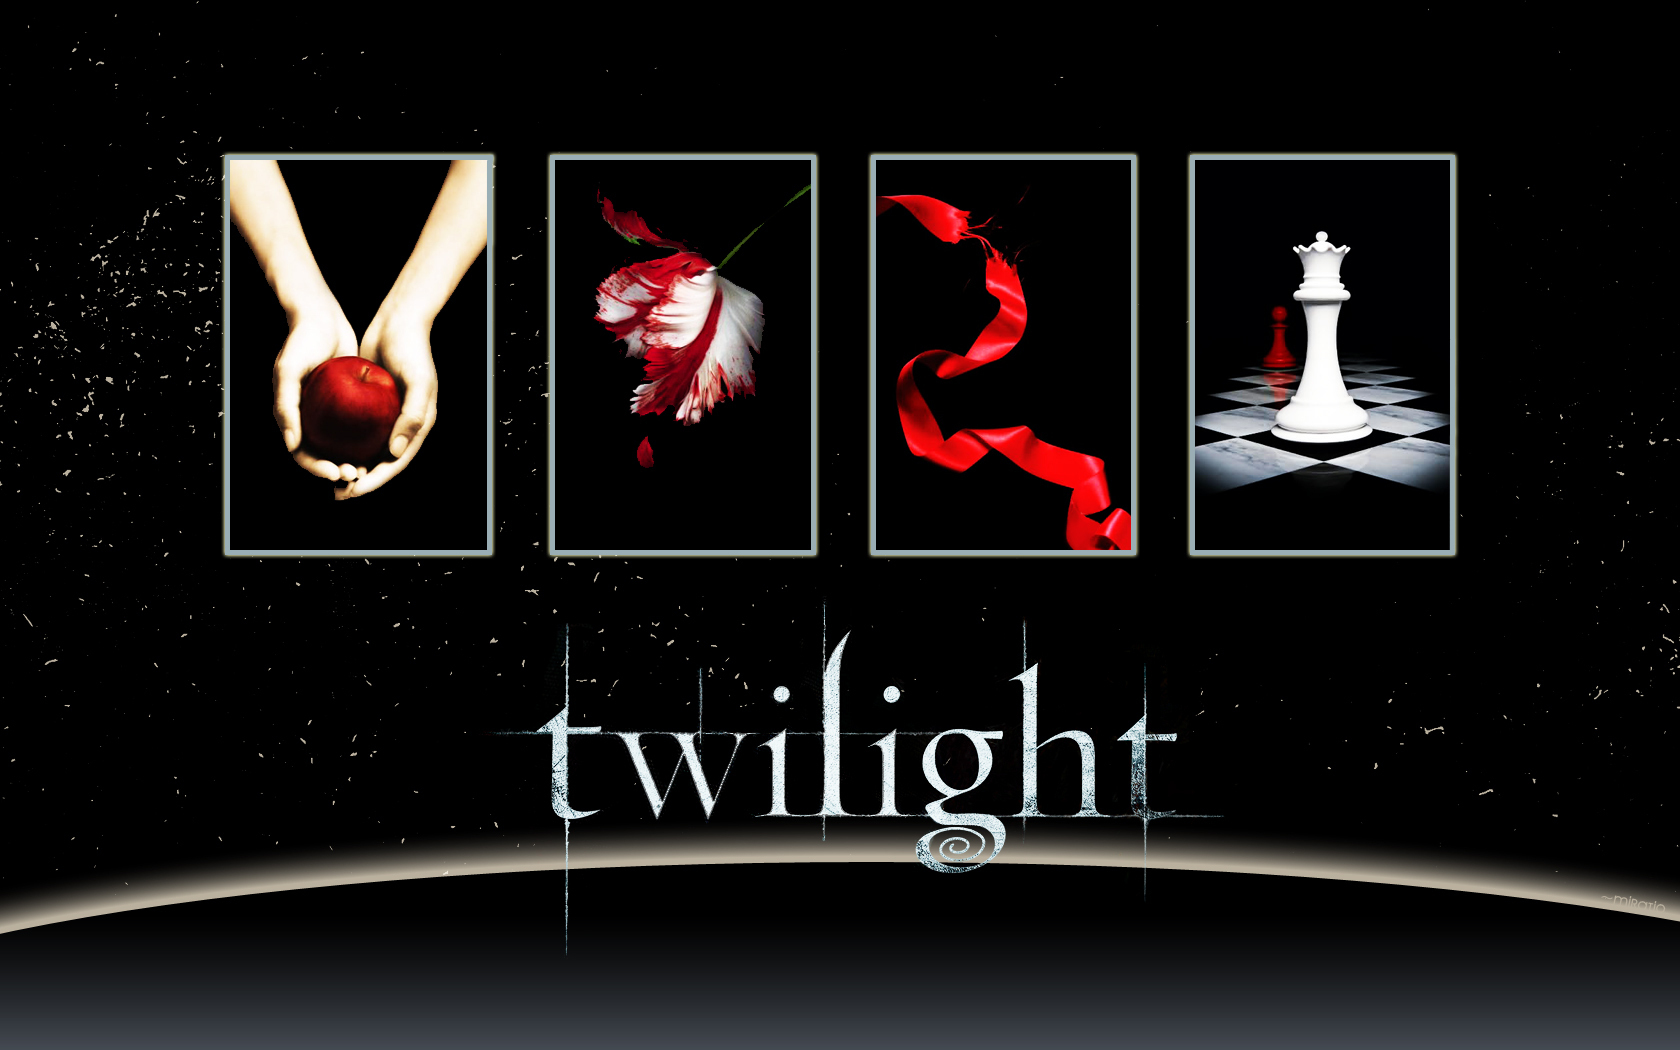 twilight saga books pdf free download